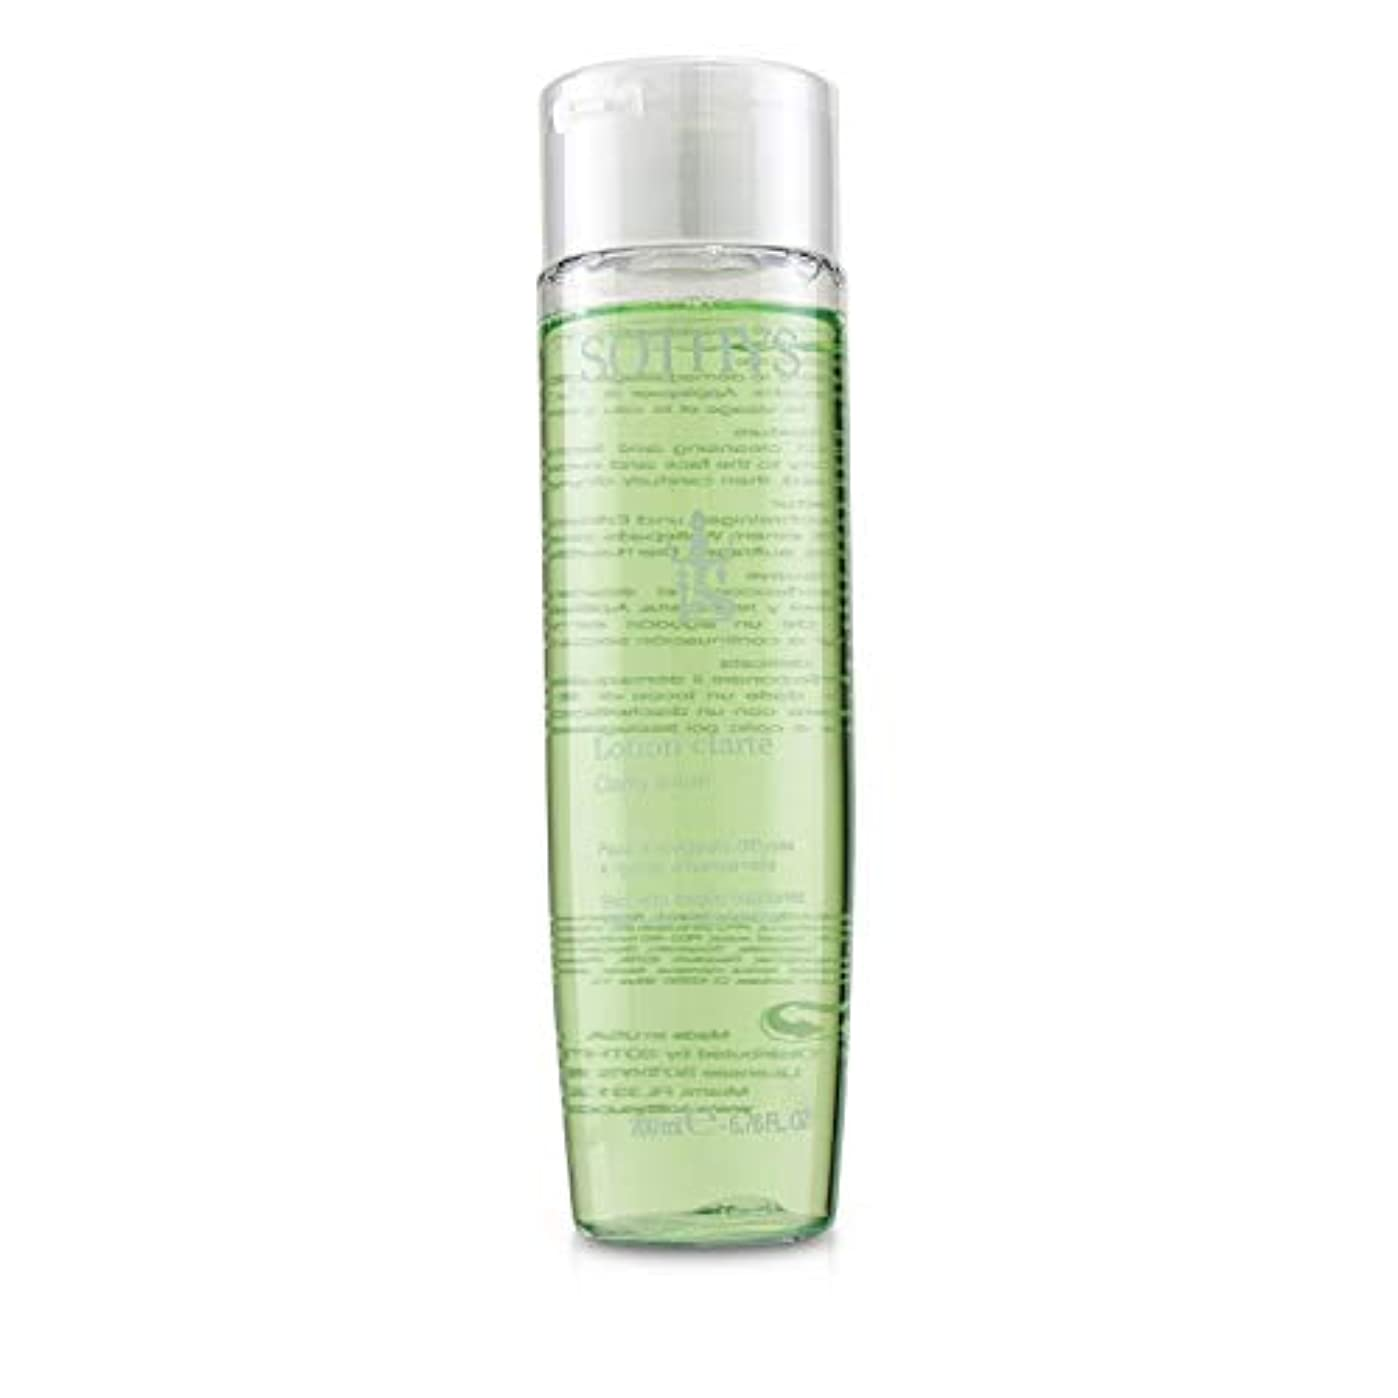 ハリウッドホールド西Sothys Clarity Lotion - For Skin With Fragile Capillaries, With Witch Hazel Extract 200ml/6.76oz並行輸入品